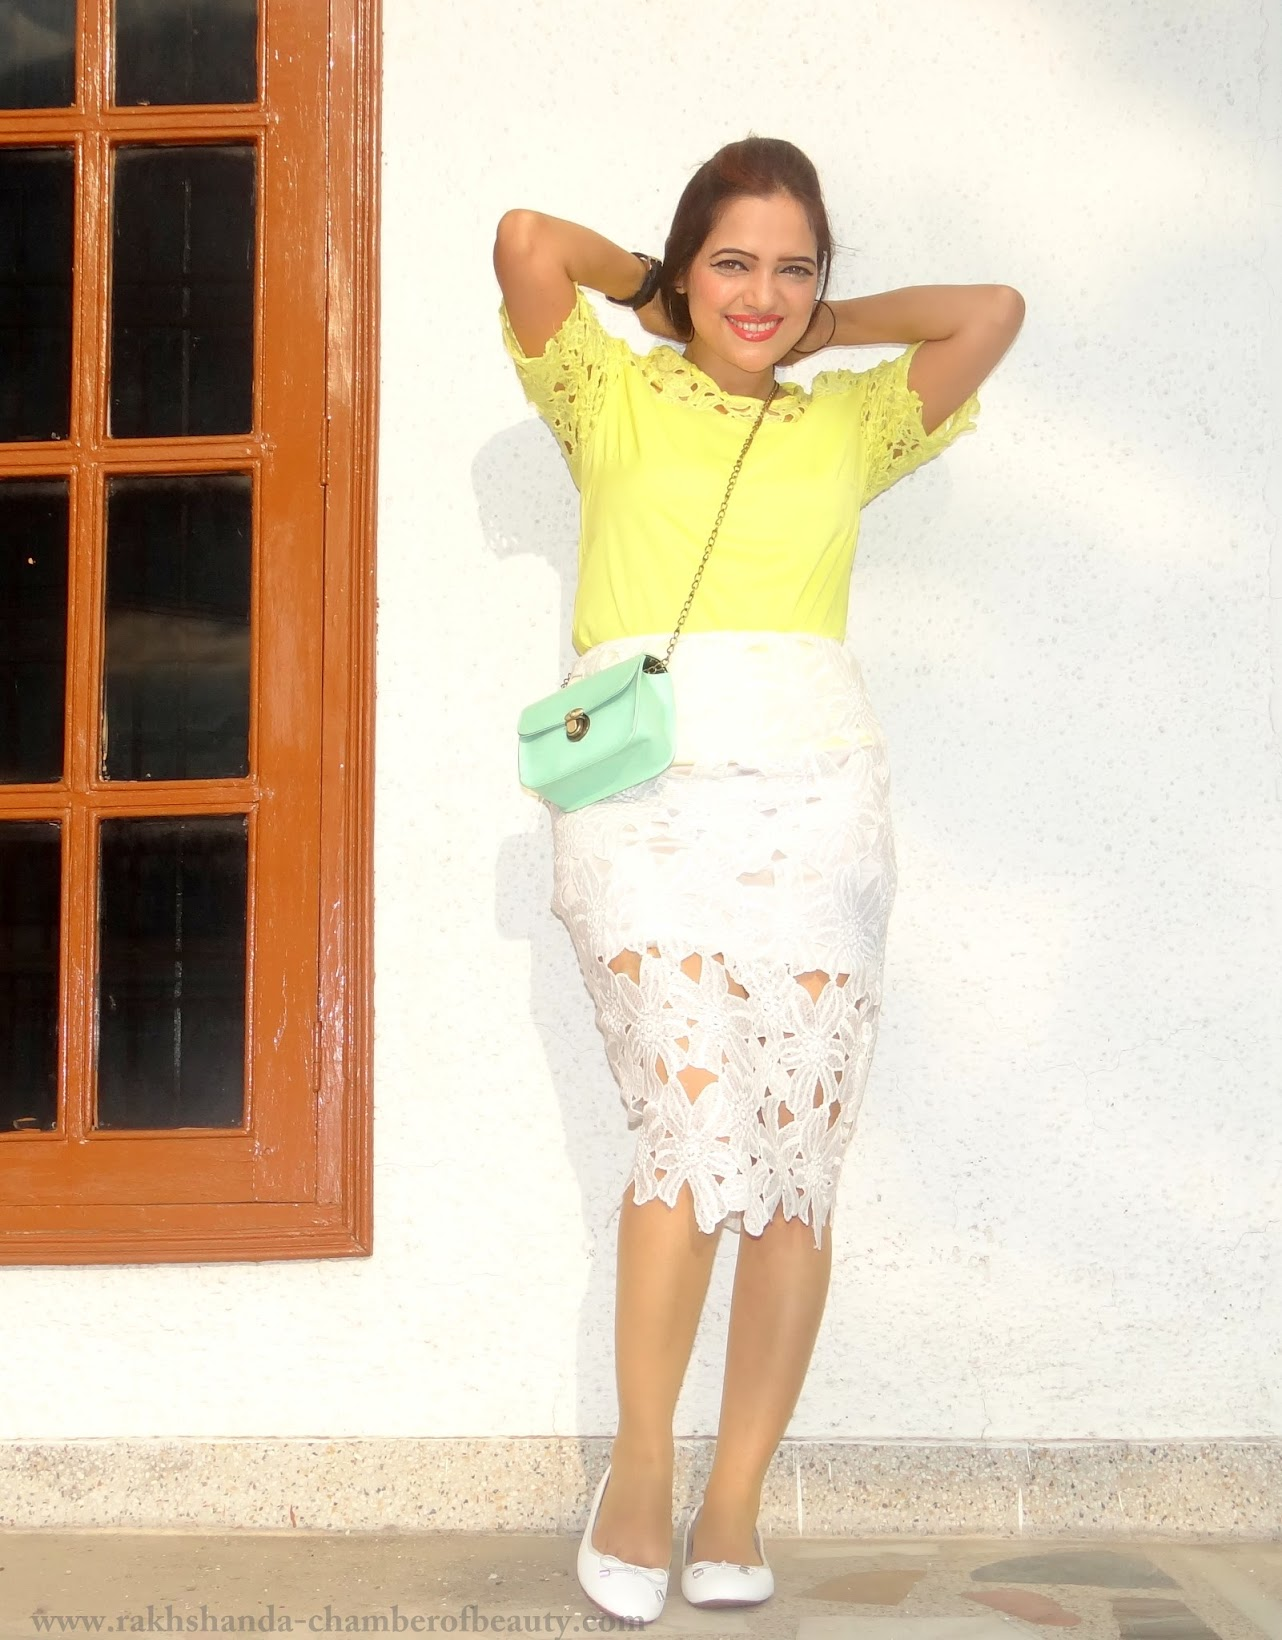 Lace on Lace-OOTD | How to style a lace top, Lace top from cndirect.com, summer fashion trends 2015, yellow lace top, Indian fashion blogger, Chamber of Beauty